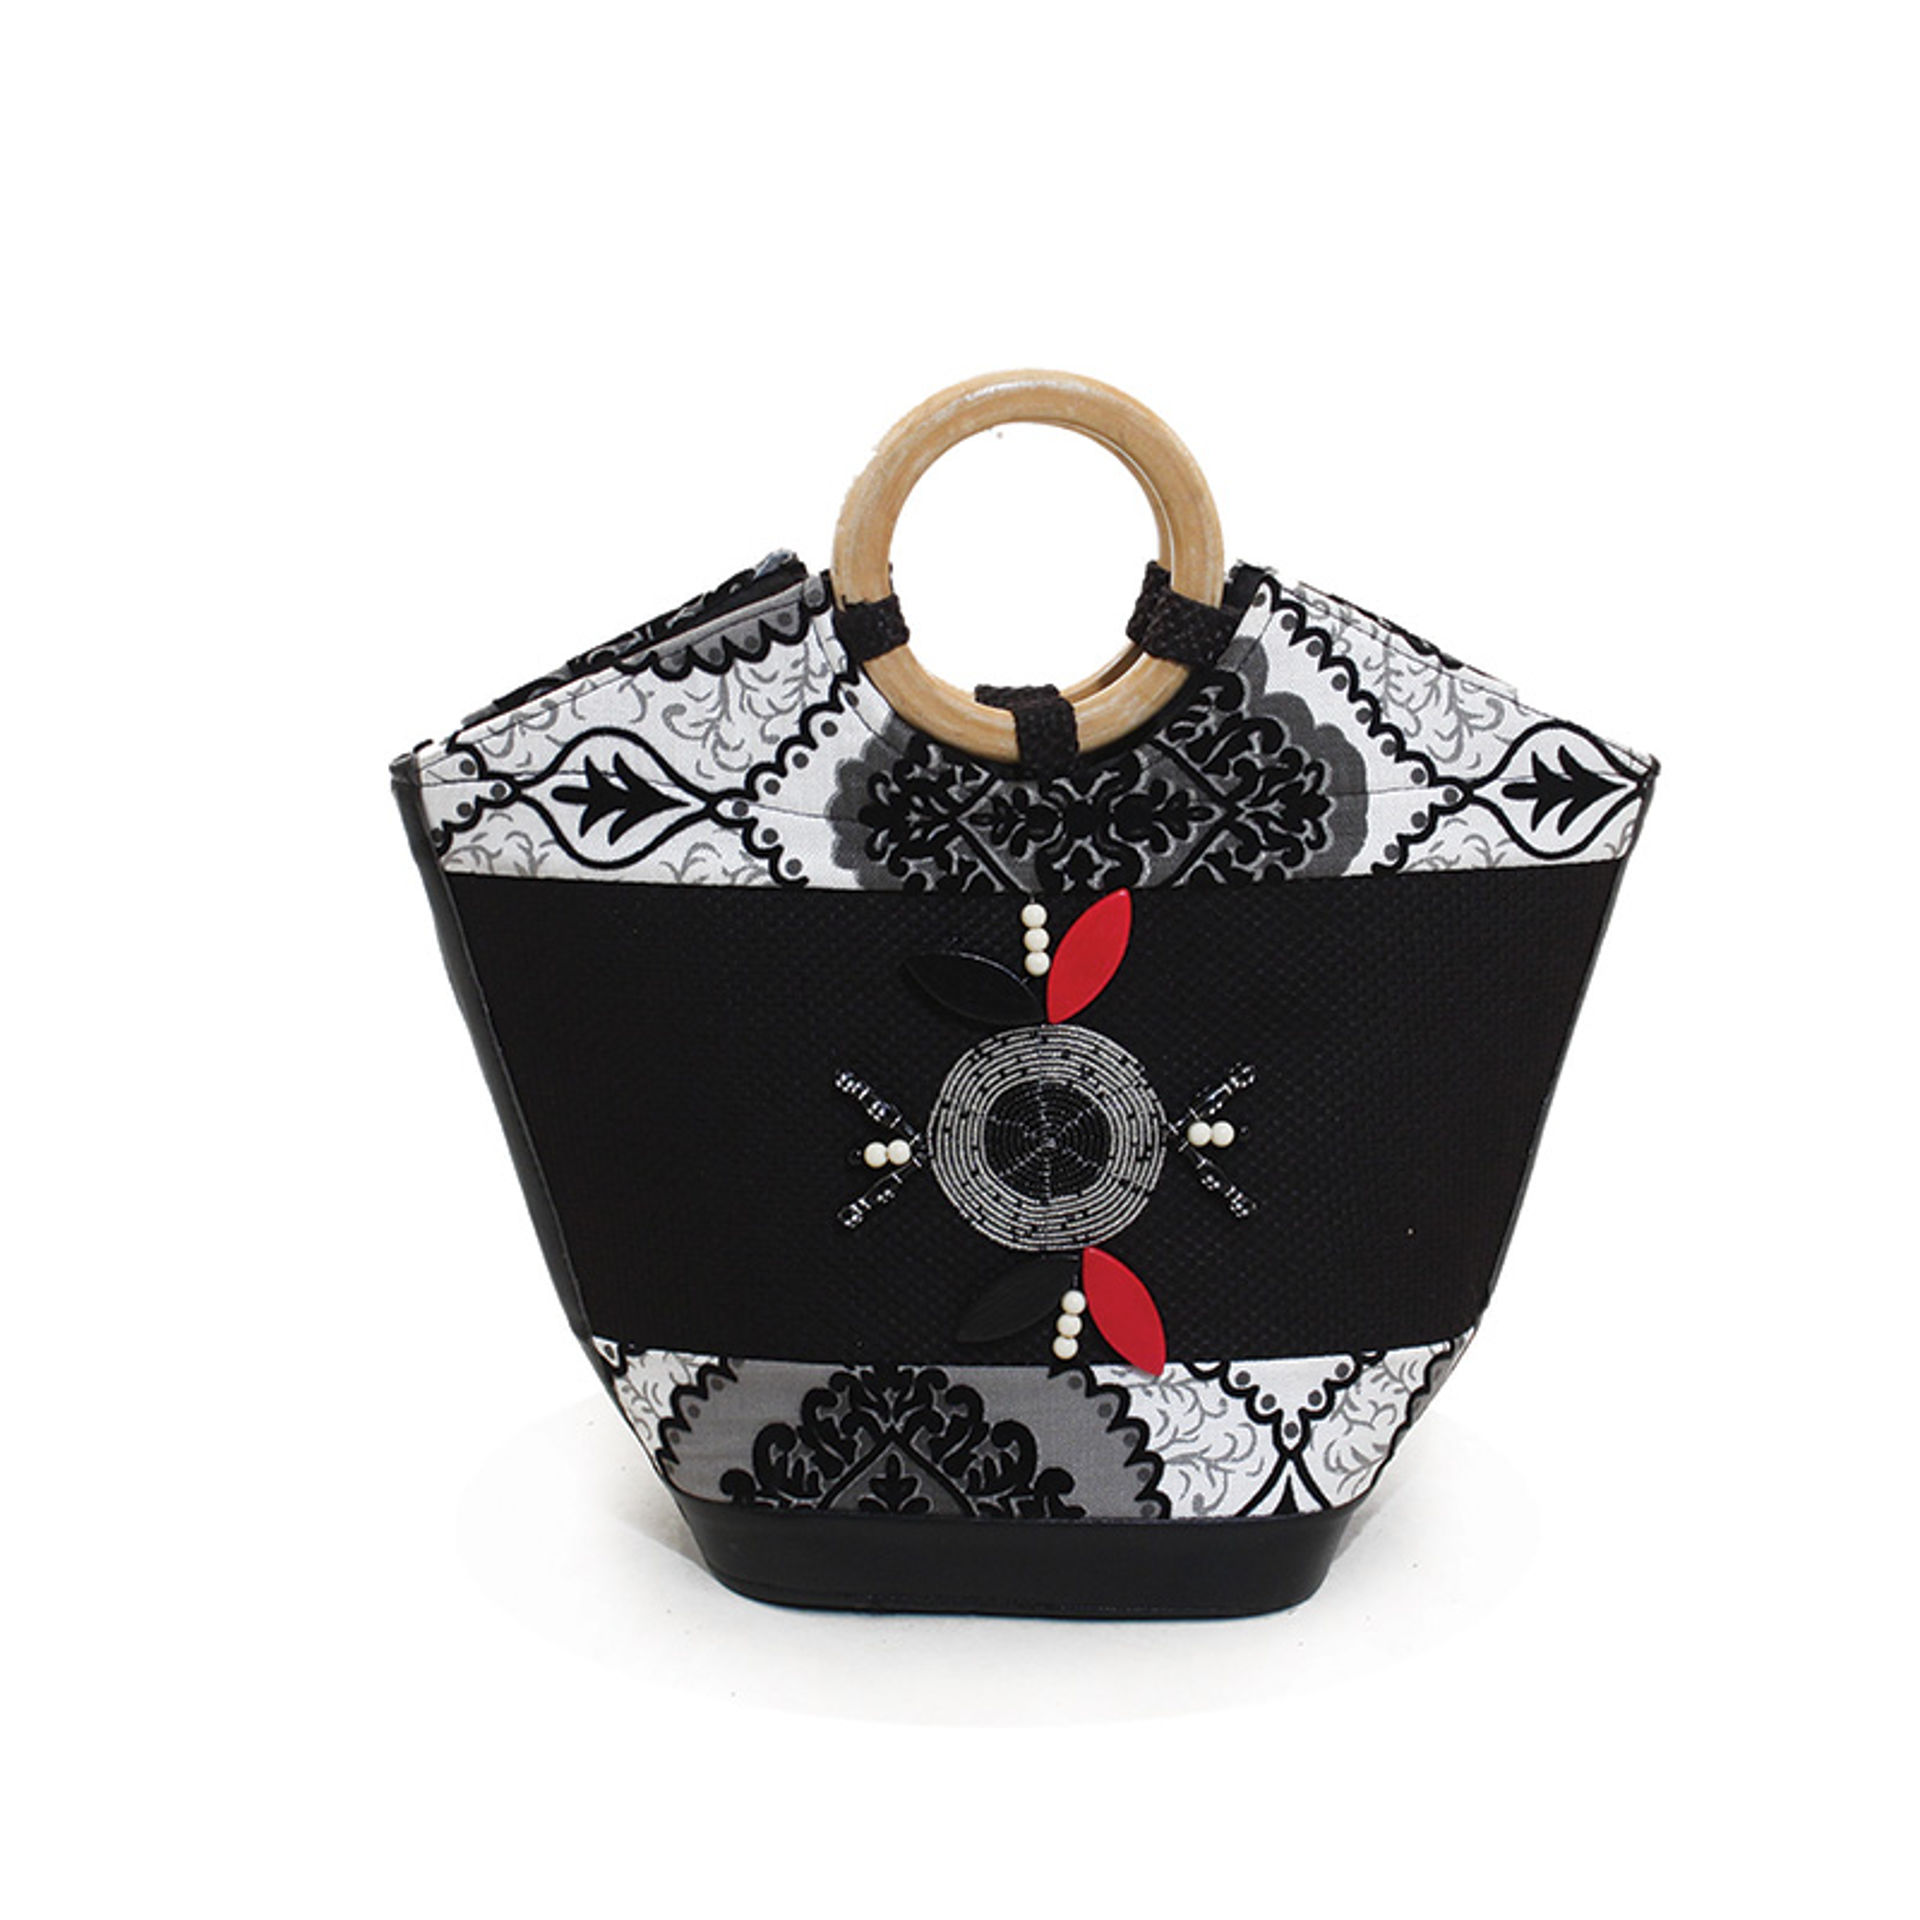 Picture of Leather Handbag - Black & White